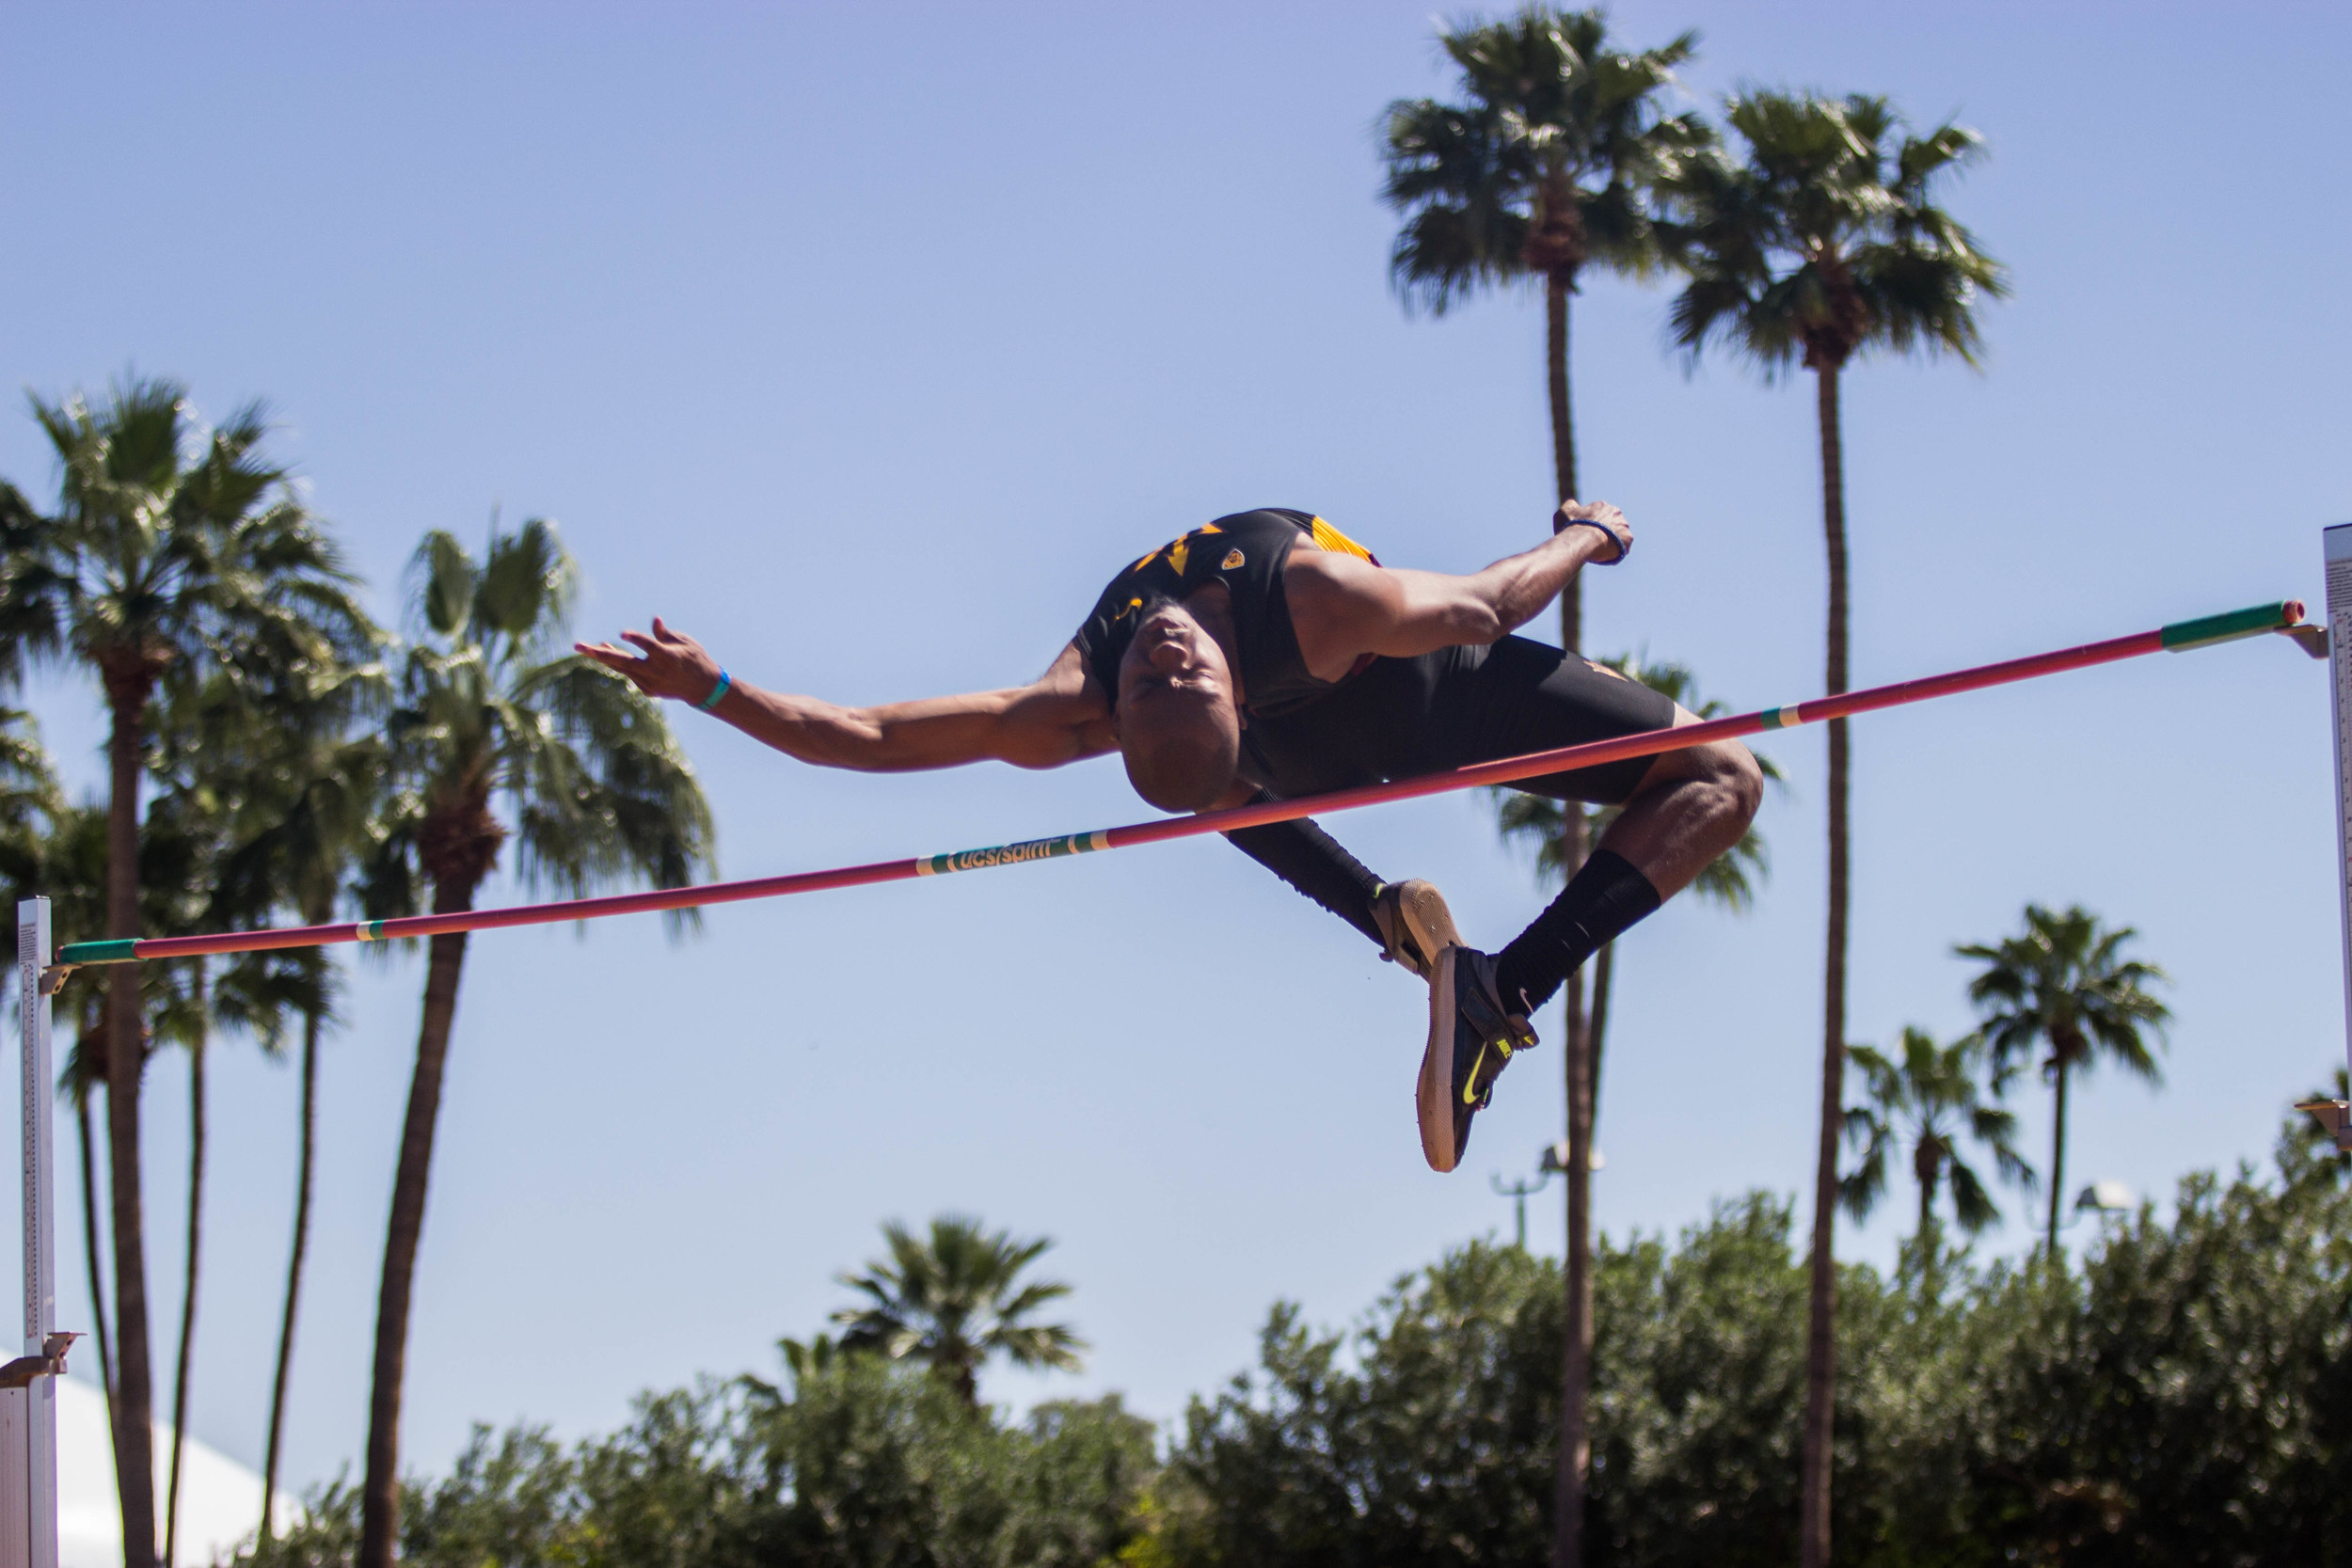 Edmond Baker clears 2.14 m in the high jump. Schools from across the country gathered for the Baldy Castillo Invitational at the Sun Angels Stadium in Tempe, AZ. (Photo by Gretchen Burnton)